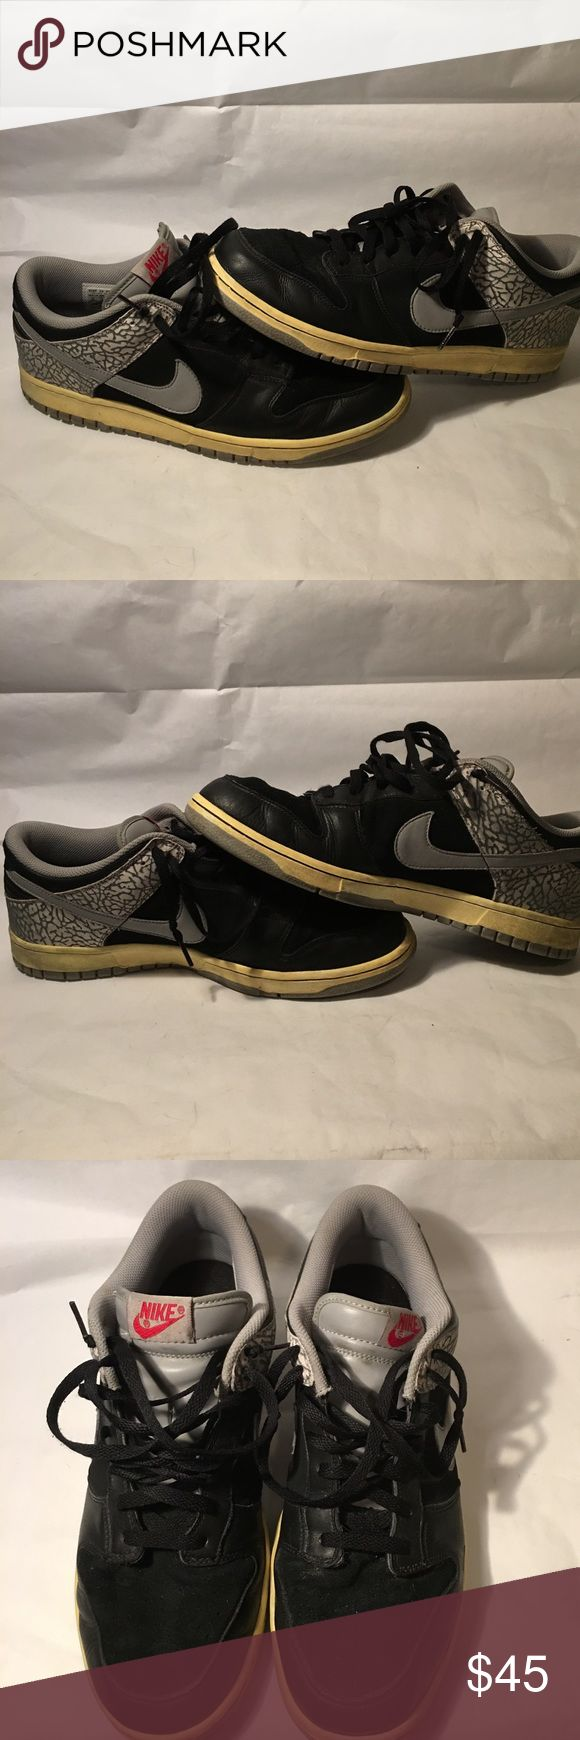 Nike: Air Jordan 3 Dunk Low Nike: Air Jordan 3 Dunk Low / Black and Cement Gray / Size 13 / Worn as work shoes so they have some creasing and some scuffs. Soles are still in great shape / No Box Nike Shoes Sneakers